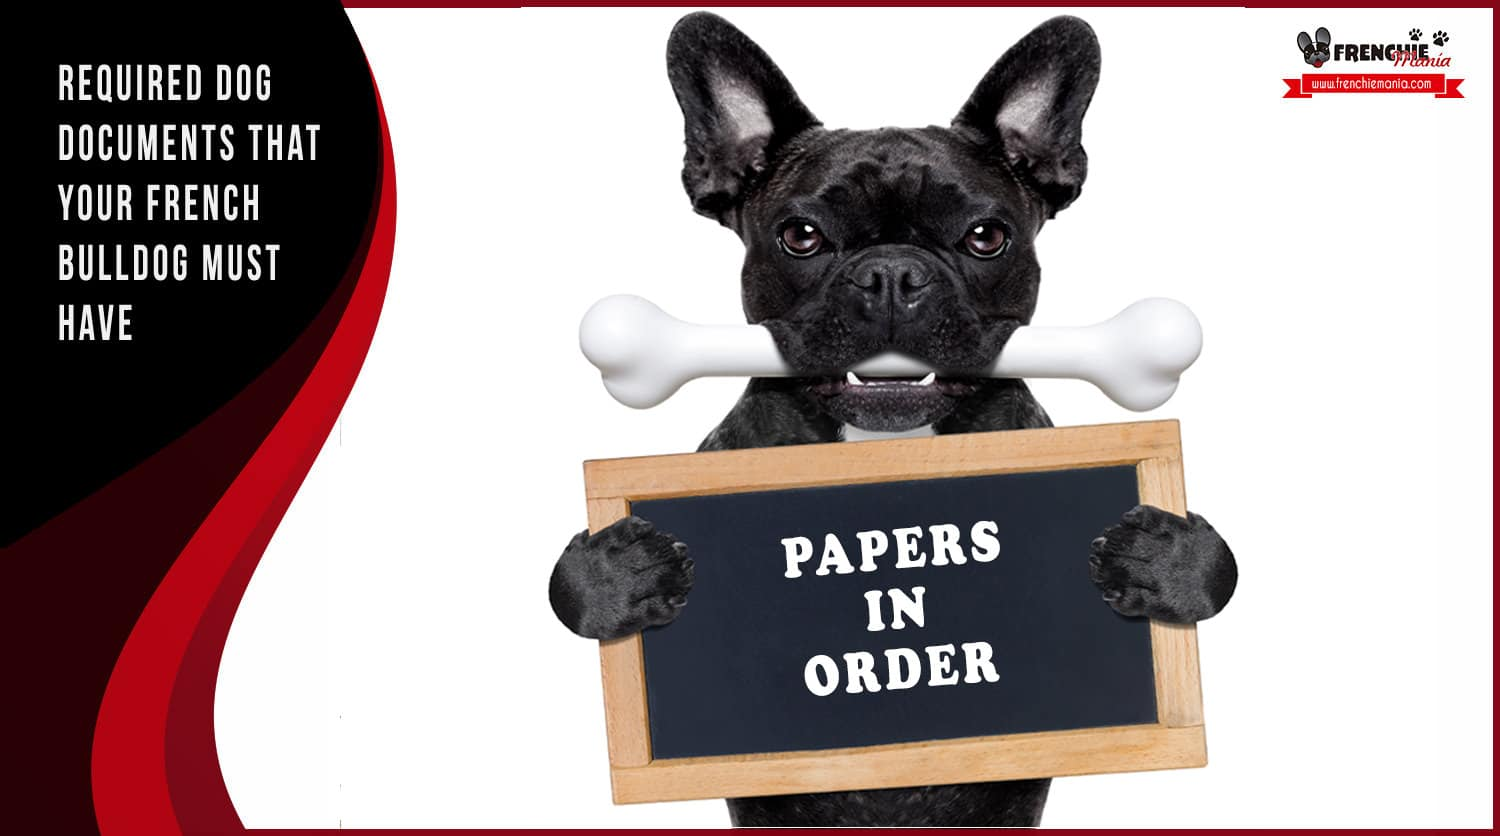 required dog documents